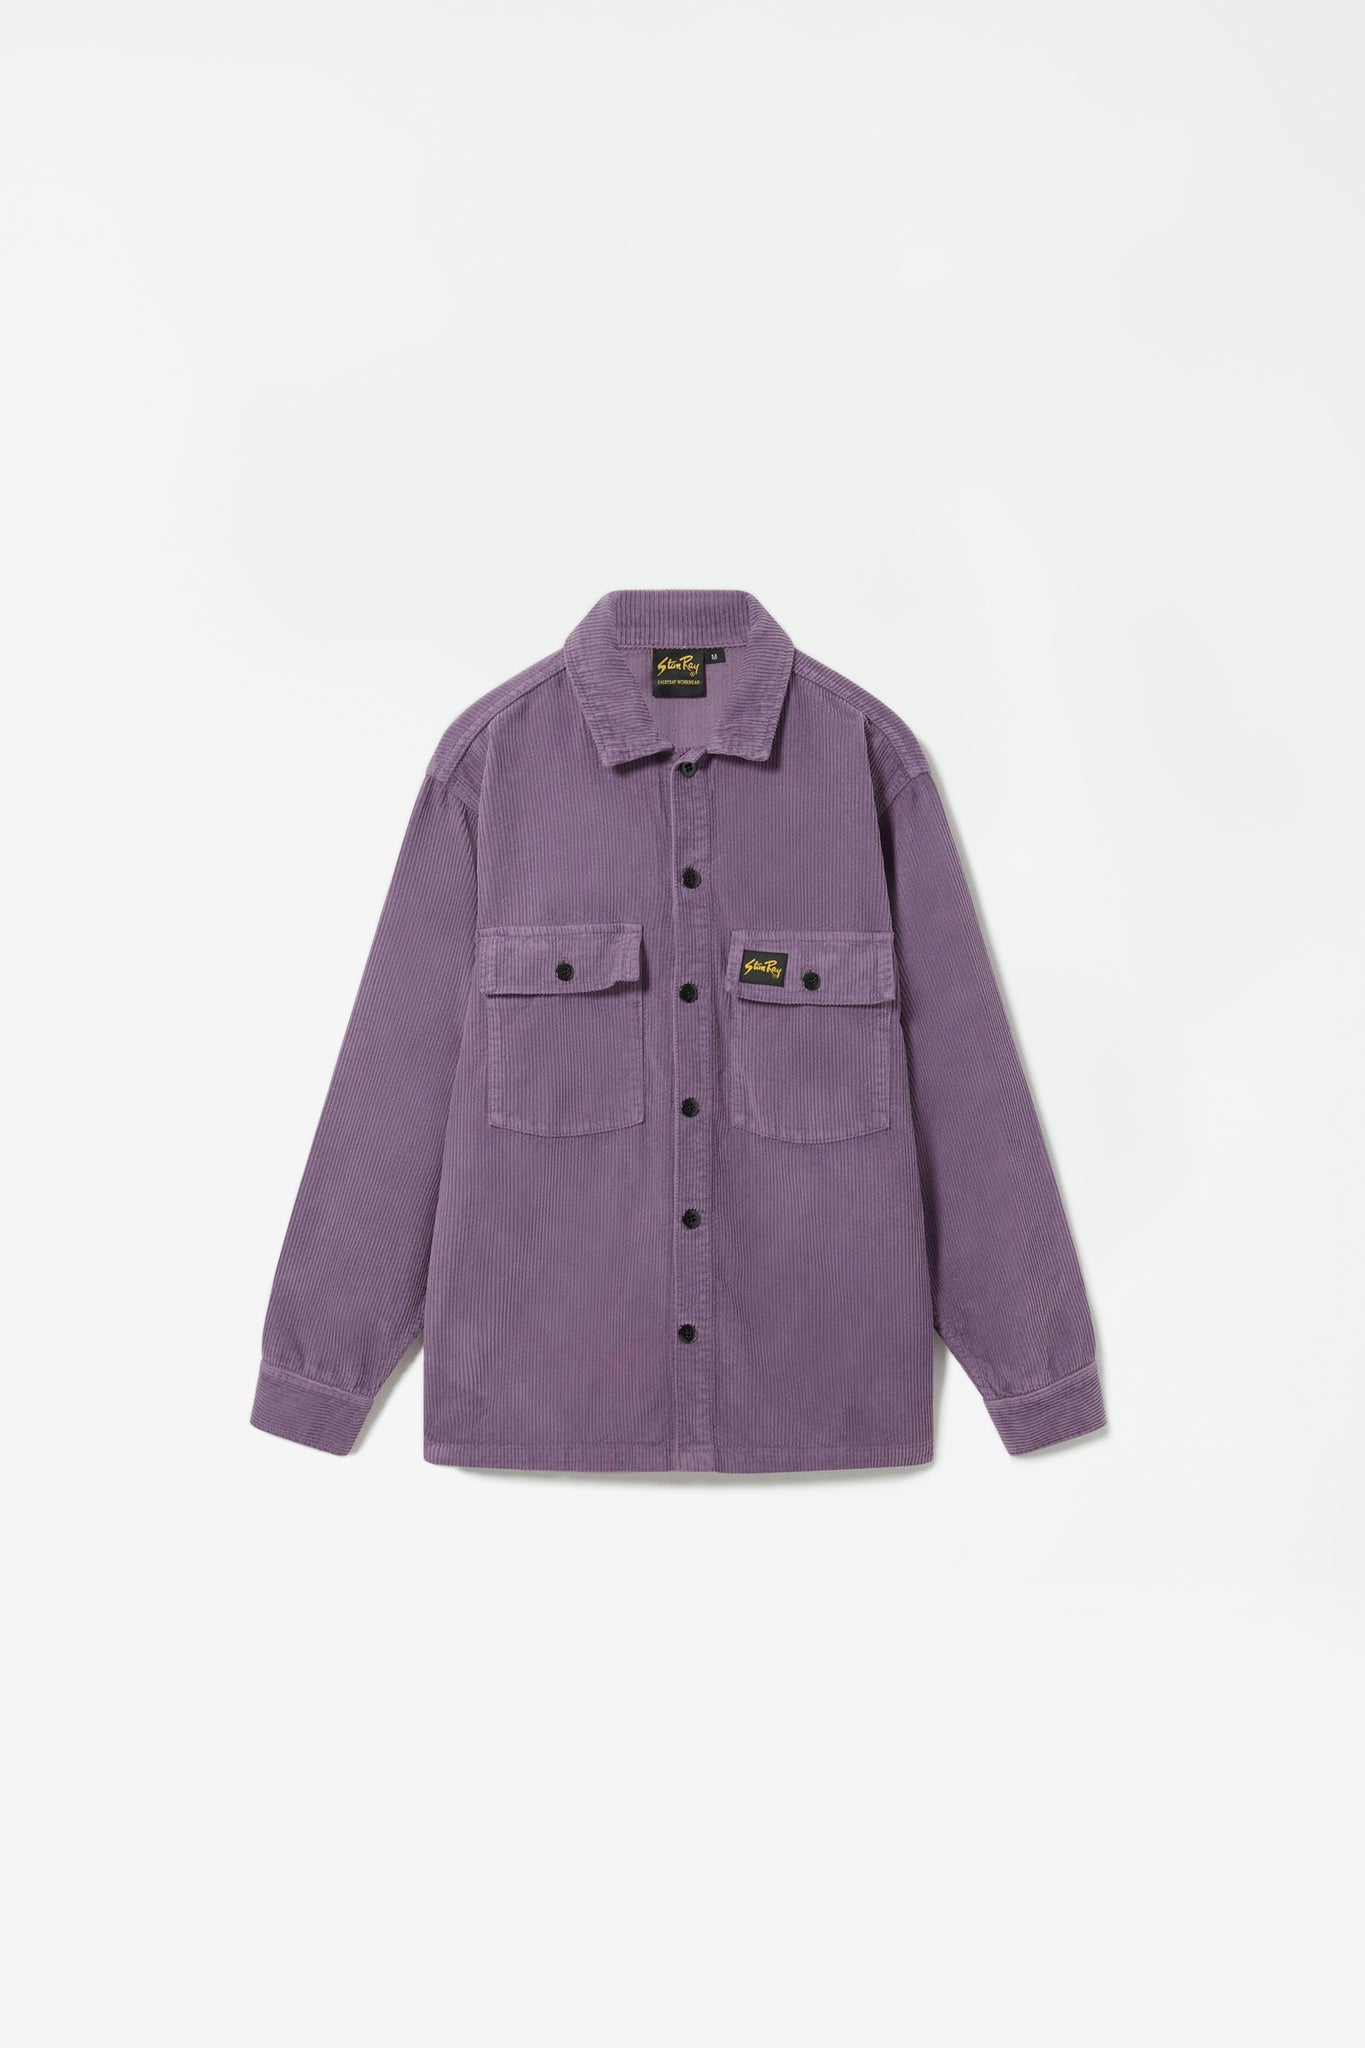 Cord CPO shirt crushed purple